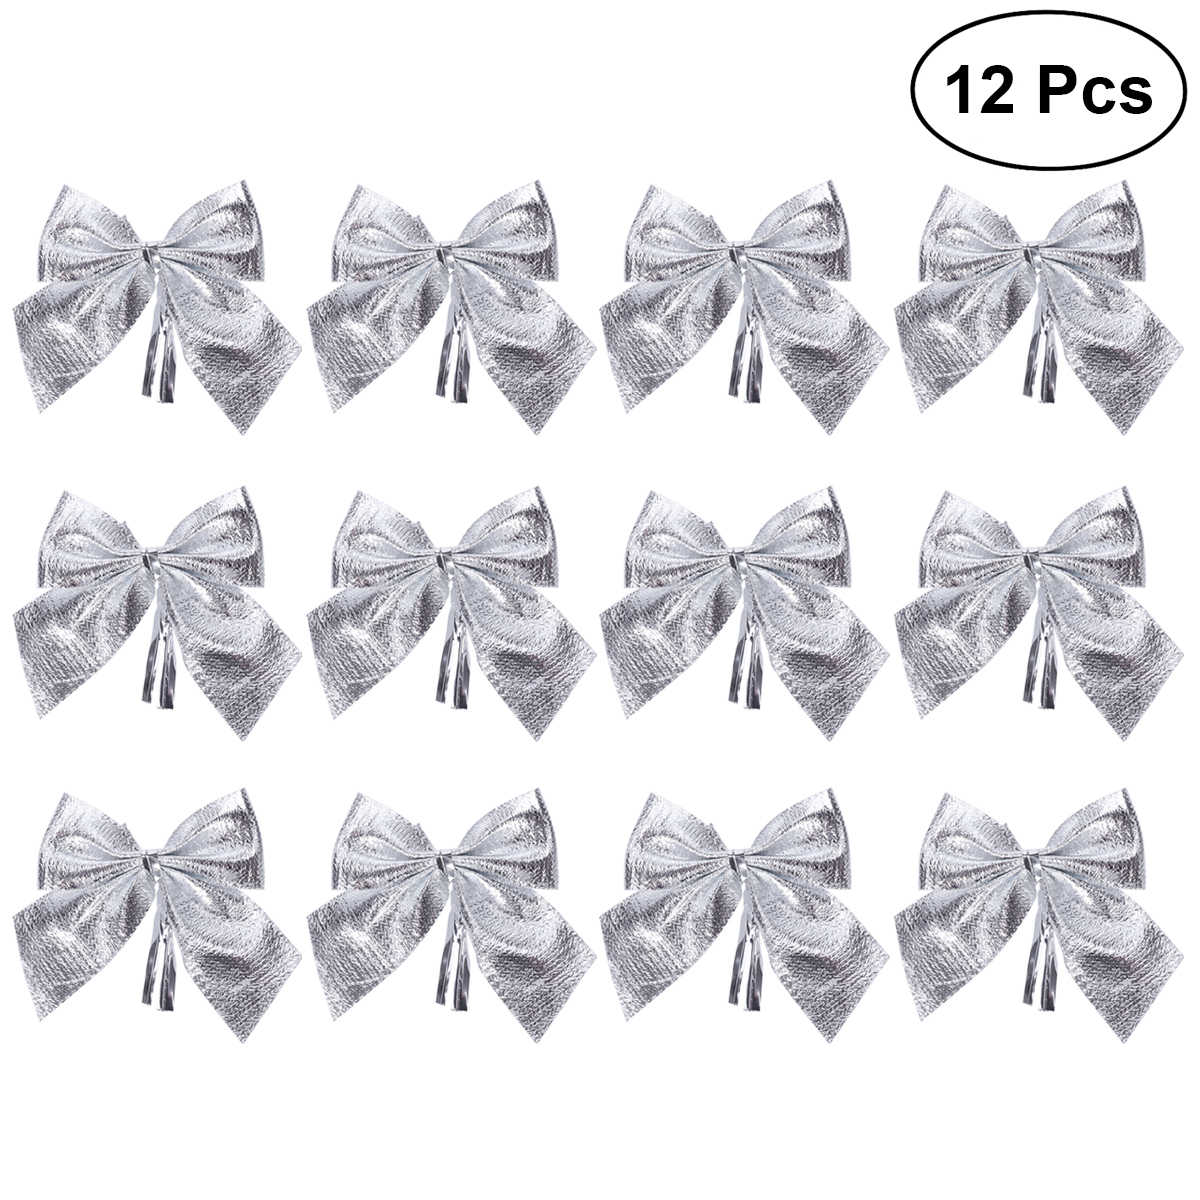 12pcs Glitter Bowknots Christmas Tree Ornaments Pendant Xmas  Hanging Decor Adornments Holiday Home Party Supplies (Silver) A20